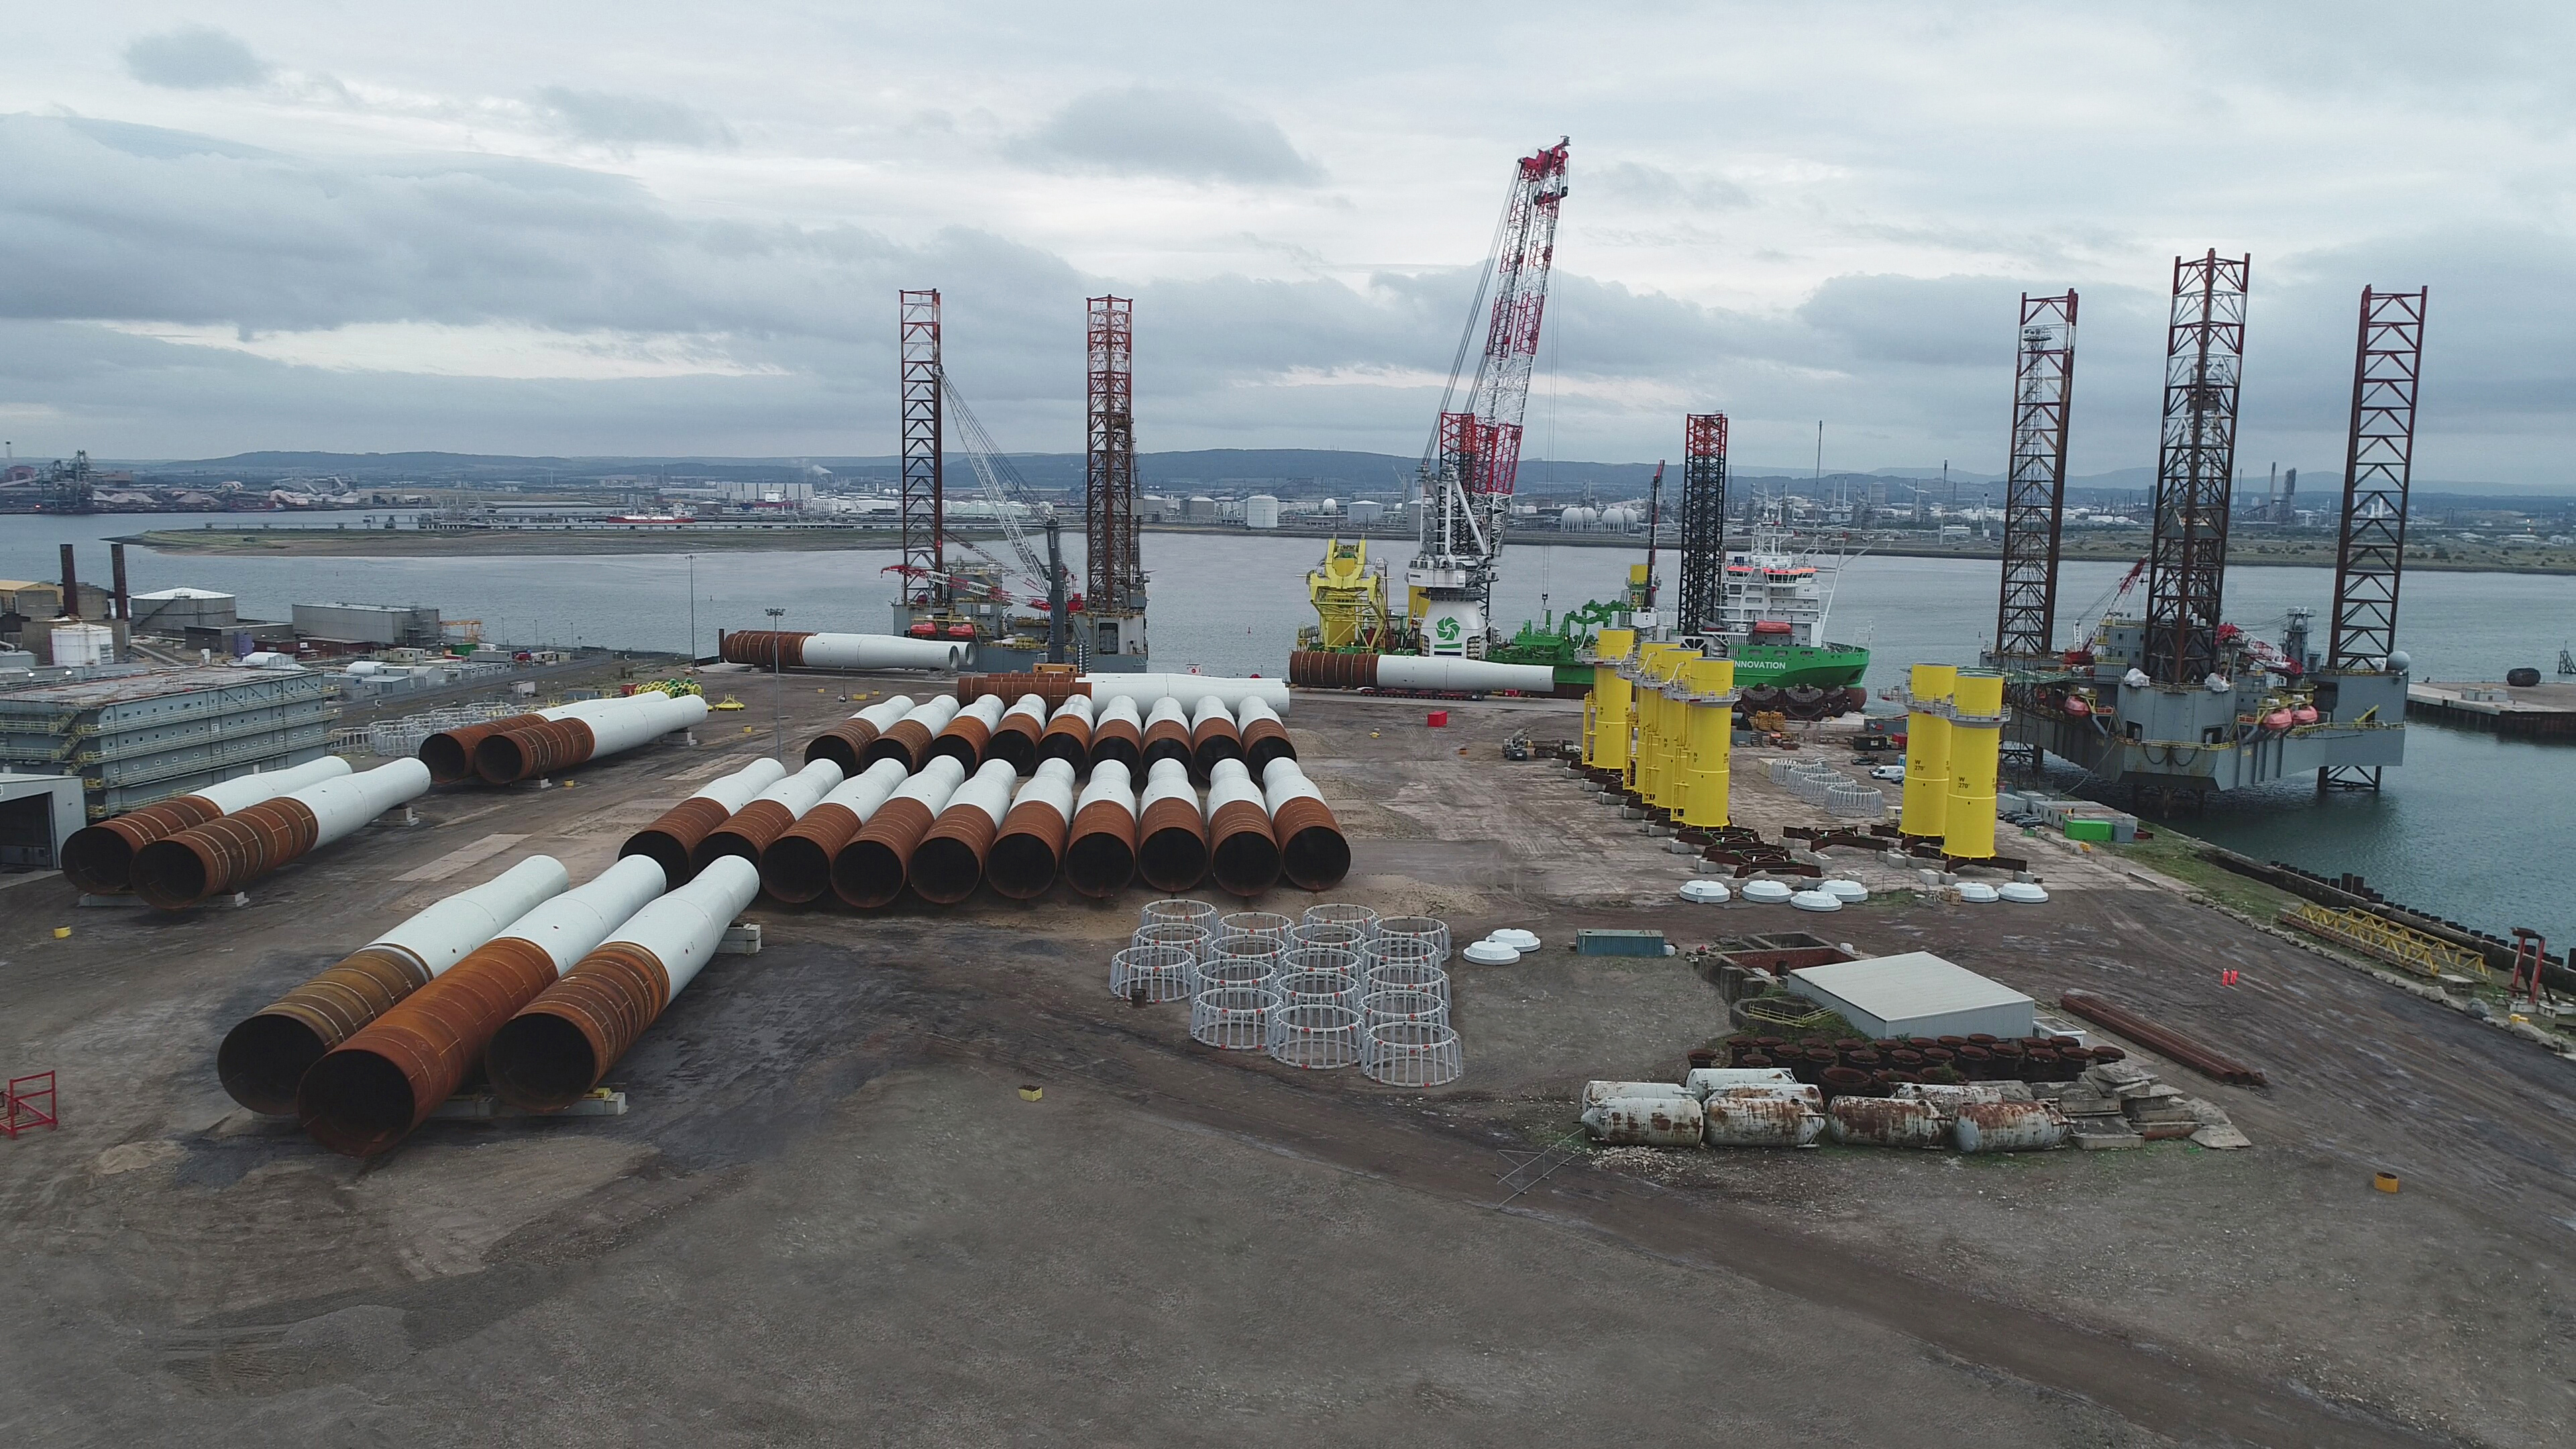 Able Seaton Port - Hornsea Offshore Wind Farm Feeder Port - 18th August 2018